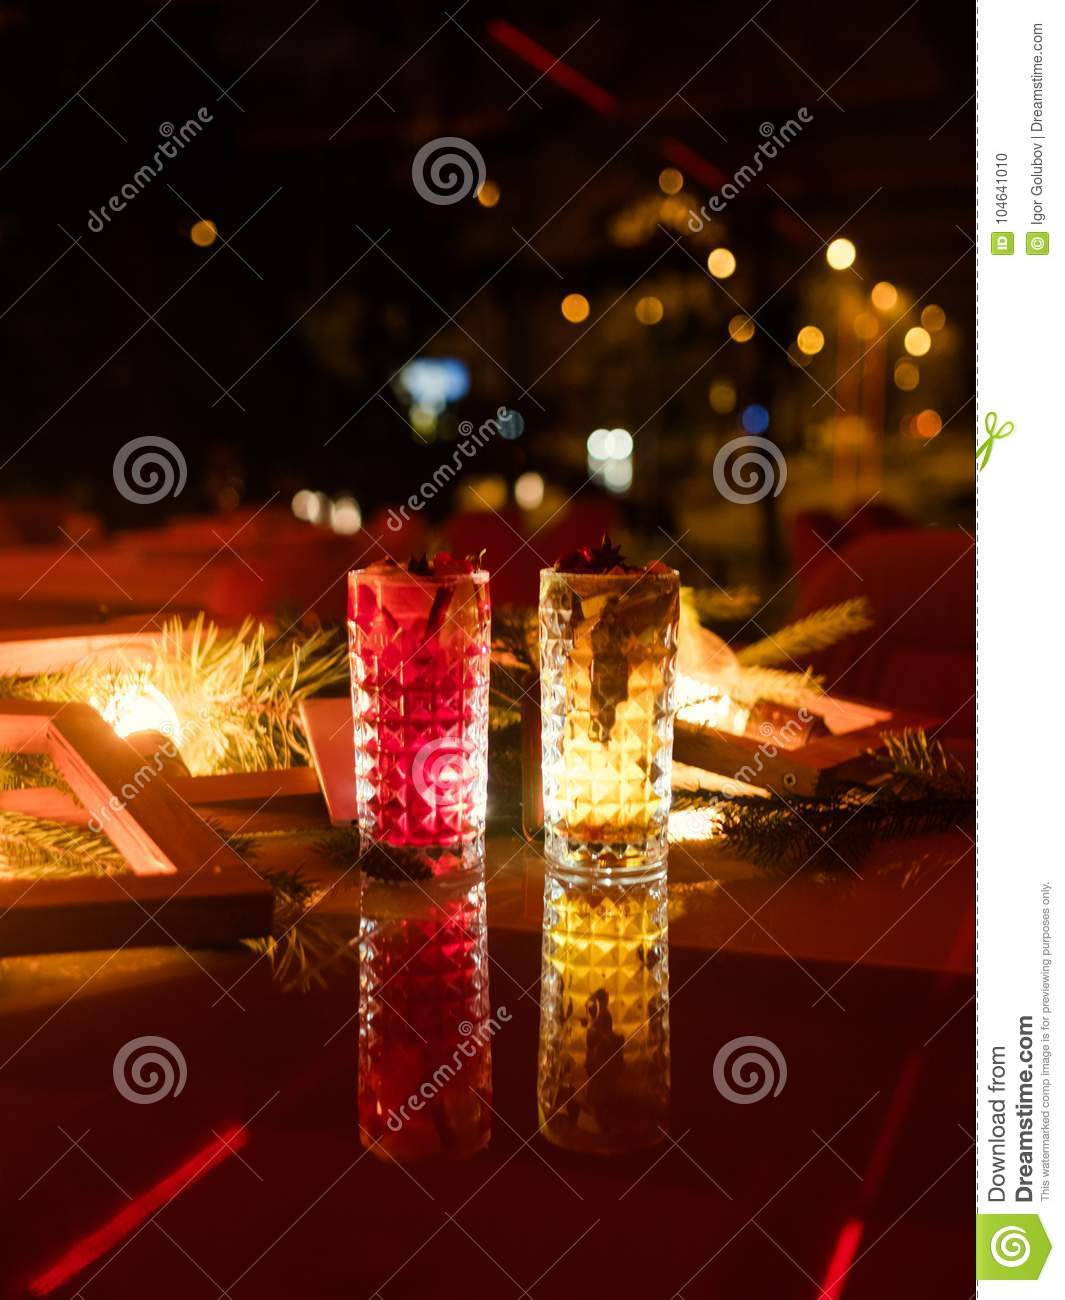 Christmas Drinks Alcohol.Party Drinks Festive Beverage Concept Stock Photo Image Of